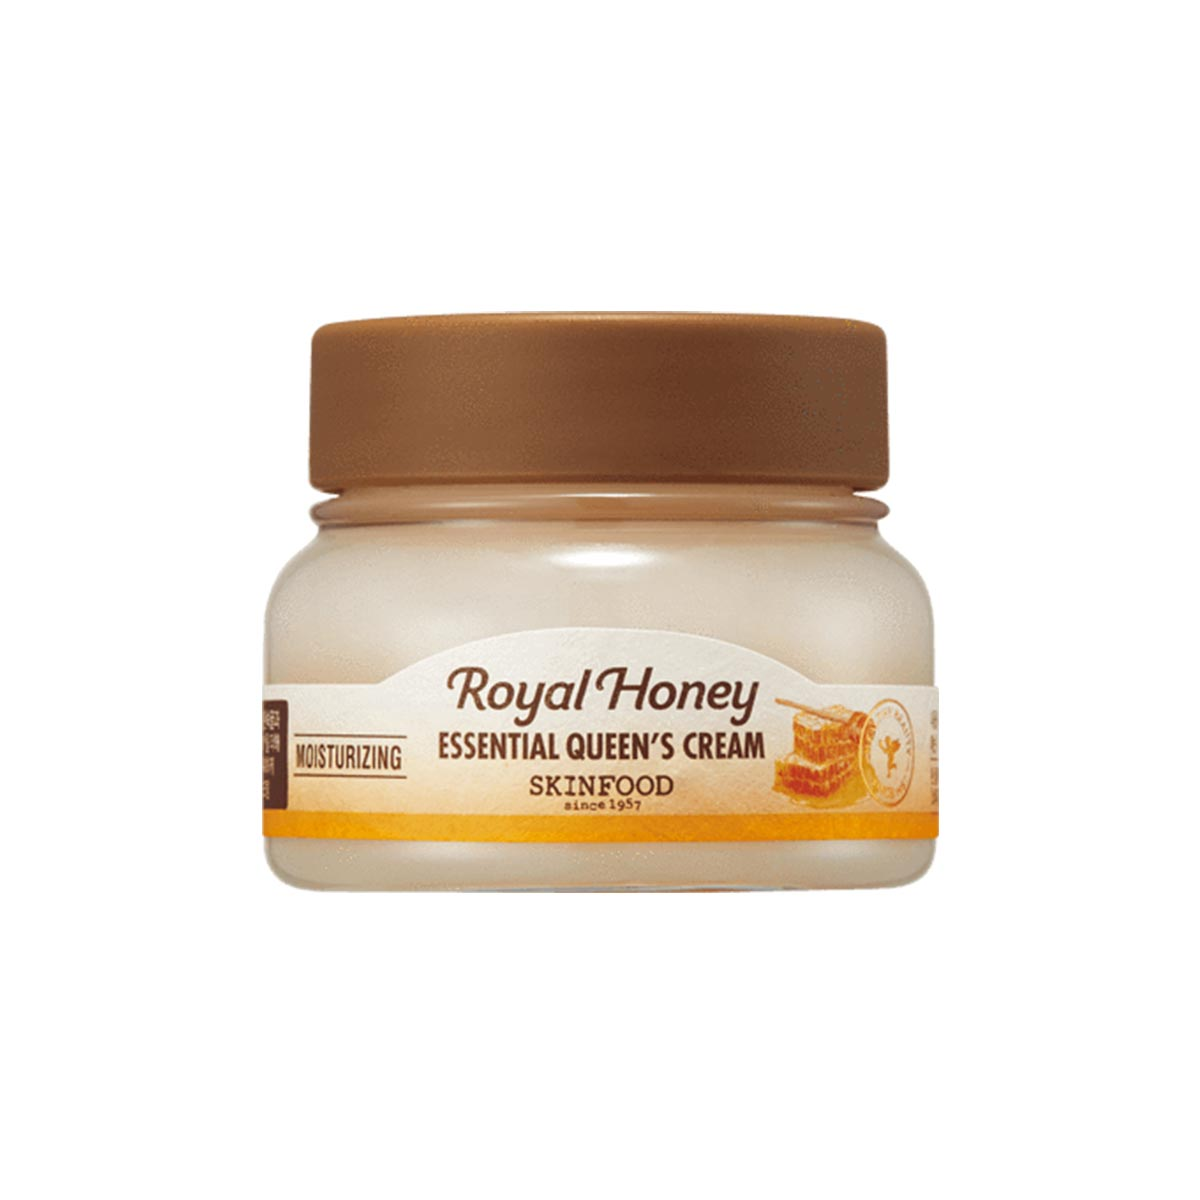 SKINFOOD-Royal-Honey-Essential-Queen´s-Cream-Miss-Eco